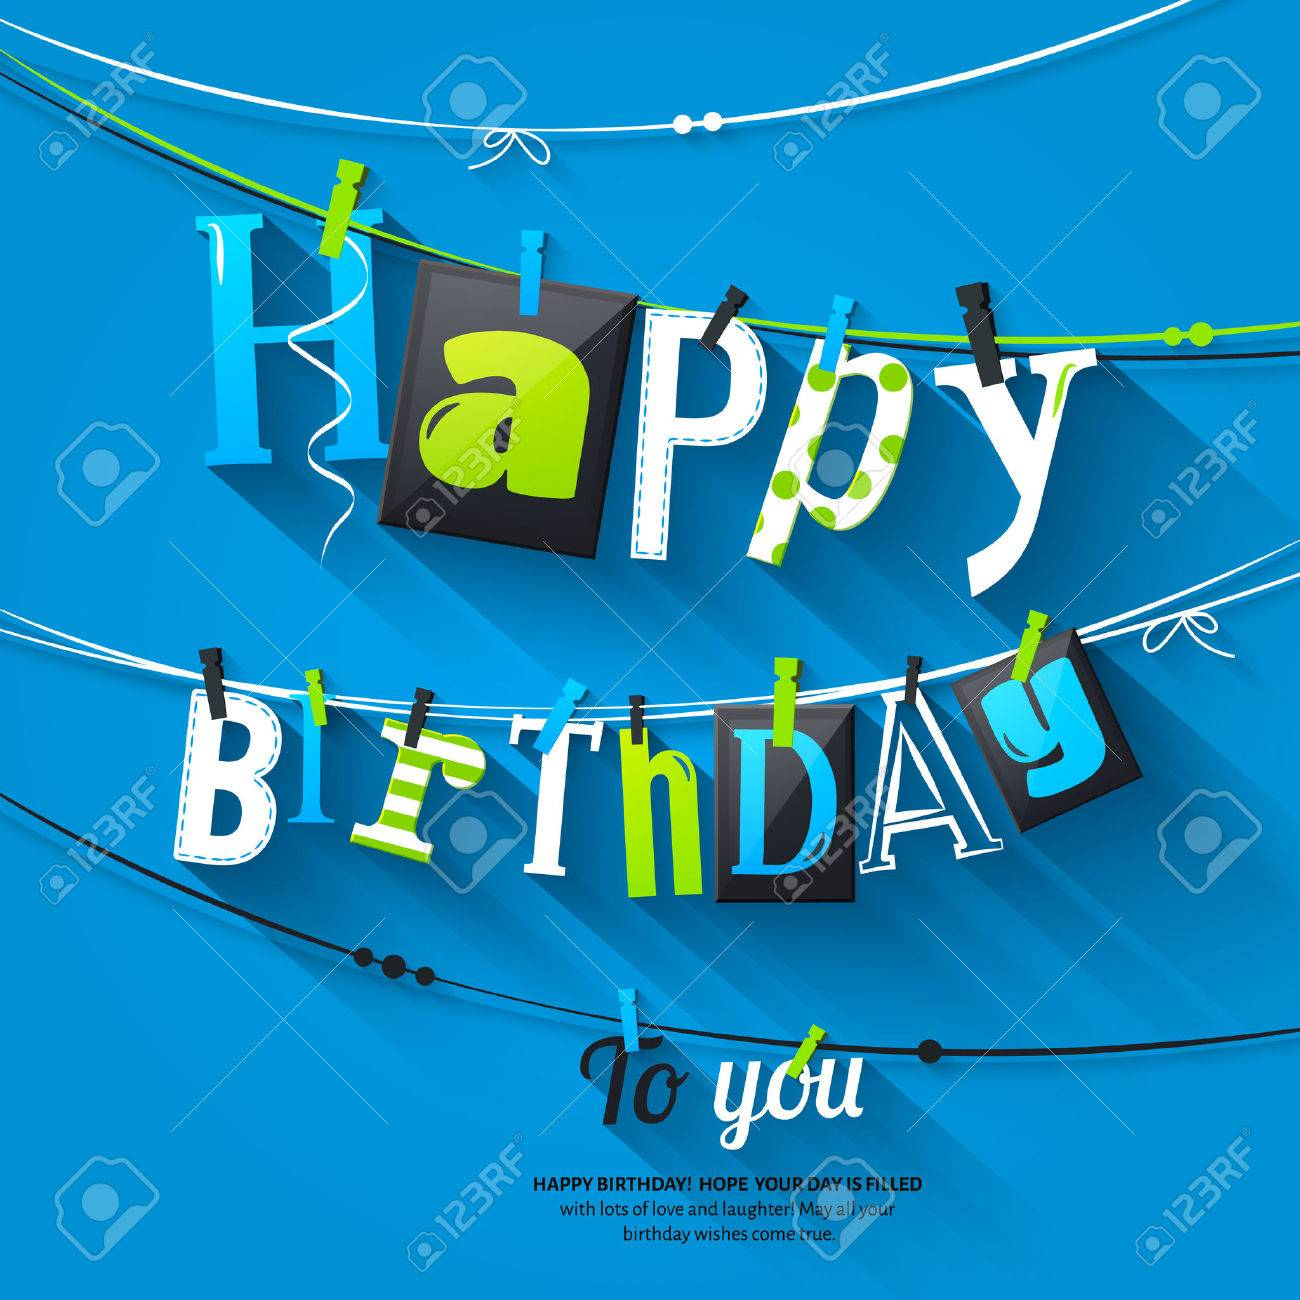 Birthday card. Clothespin and colorful letters hang on rope. - 54007536